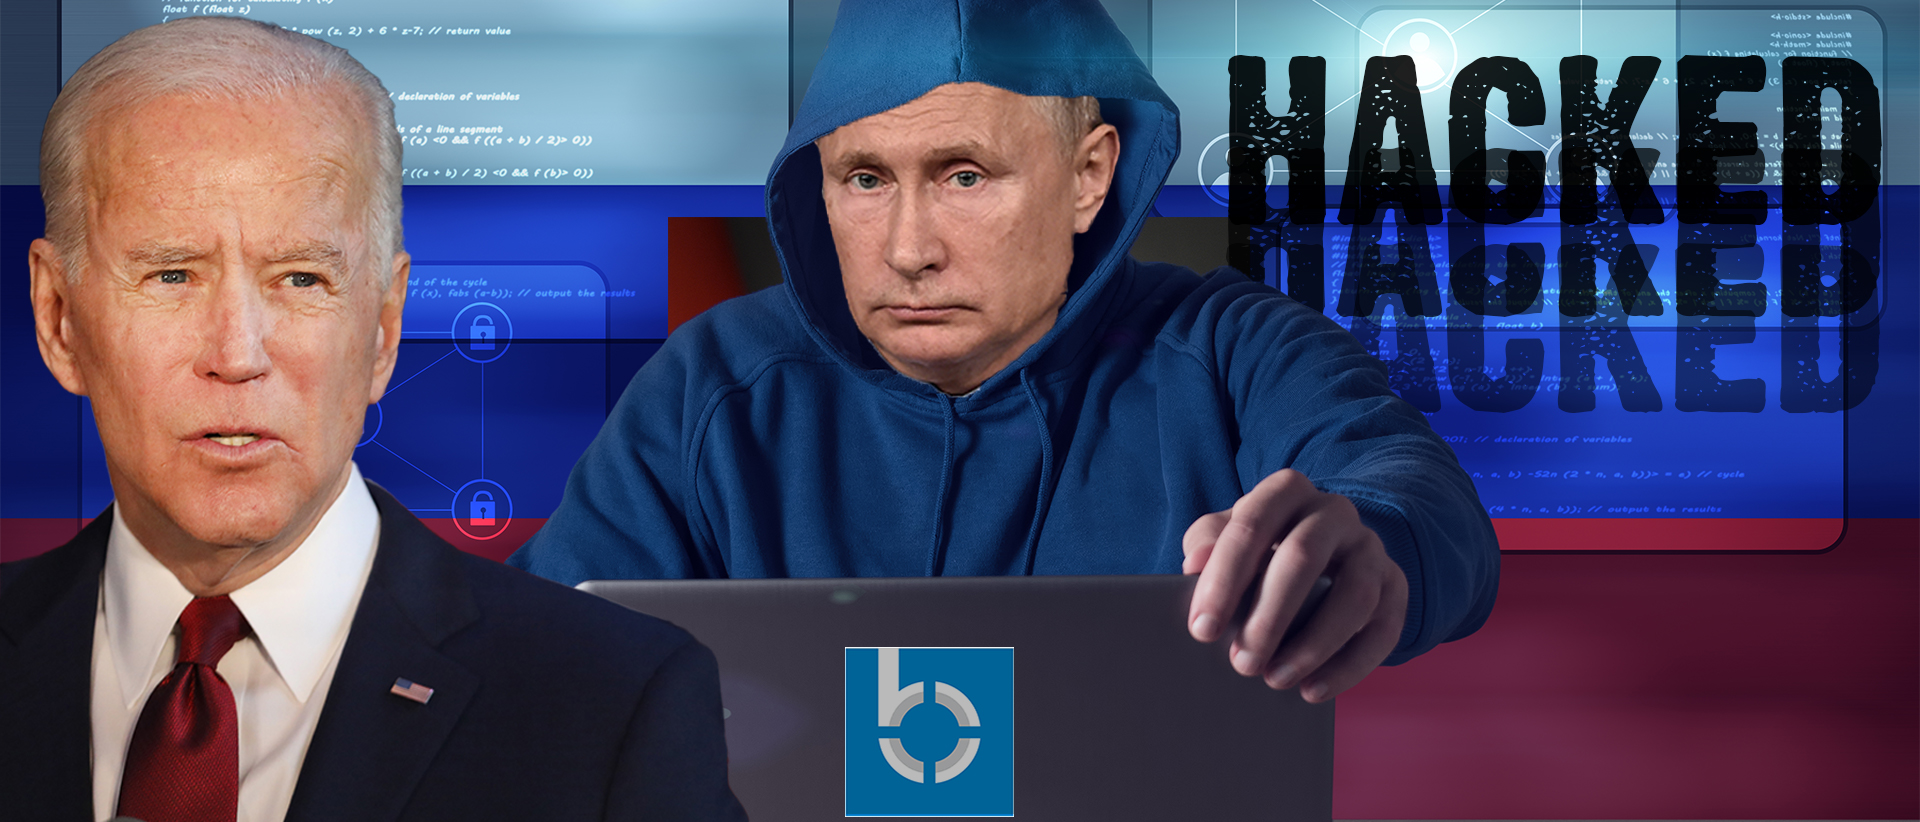 Did Russia Really Hack Burisma, Or Is This Just More Smoke And Mirrors From Joe Biden?